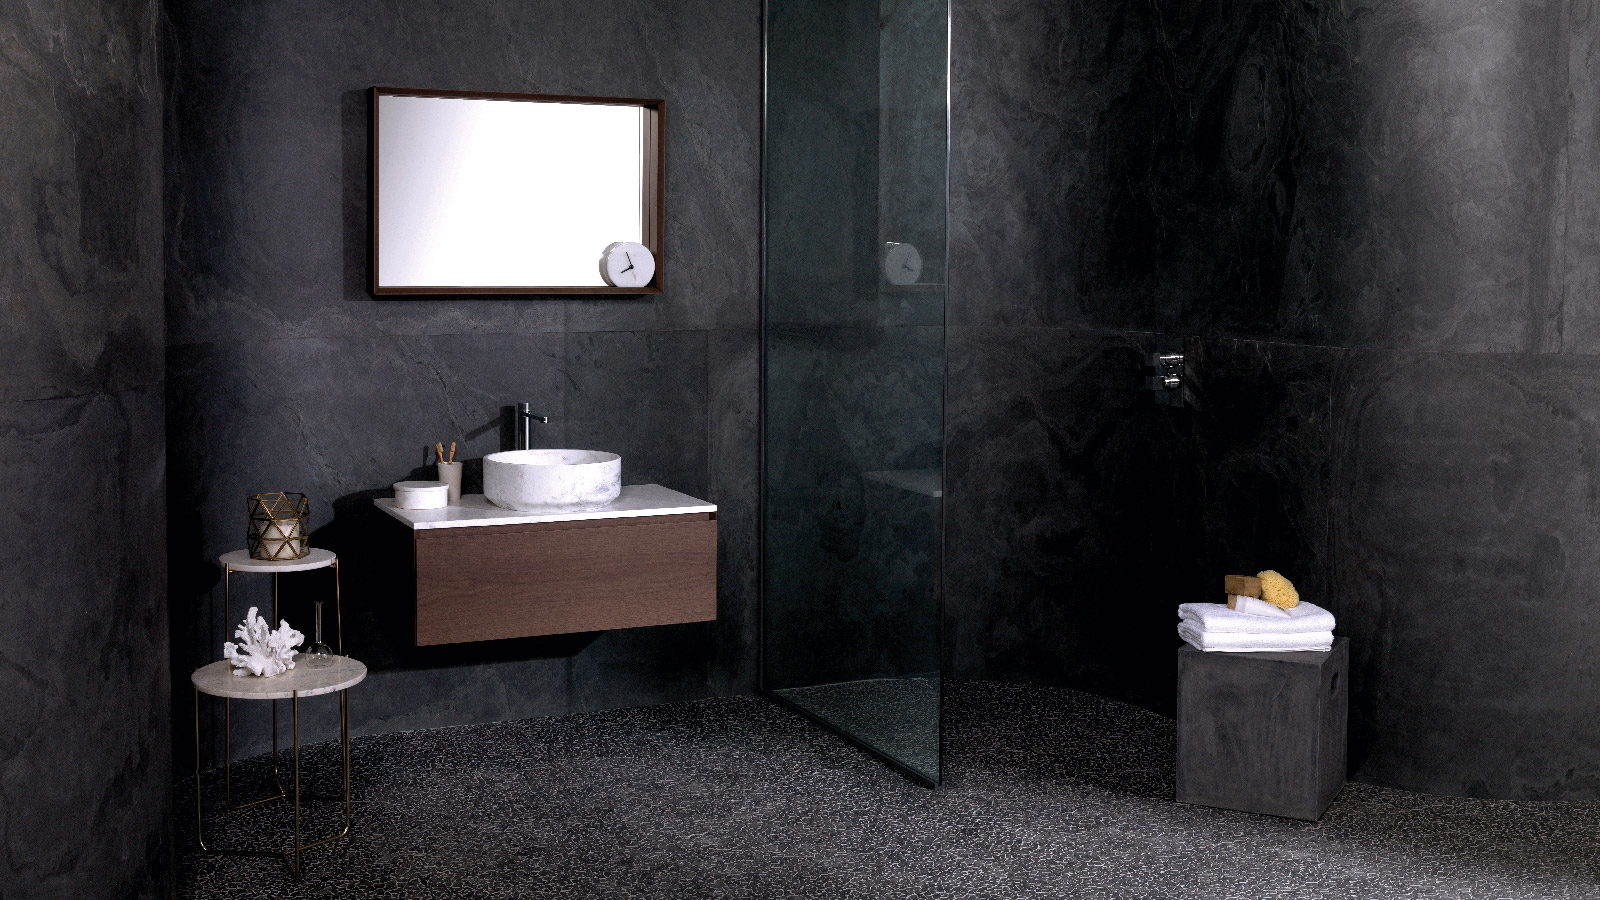 Politech Premium by Butech: Maximum adherence for wall tiles and floor tiles